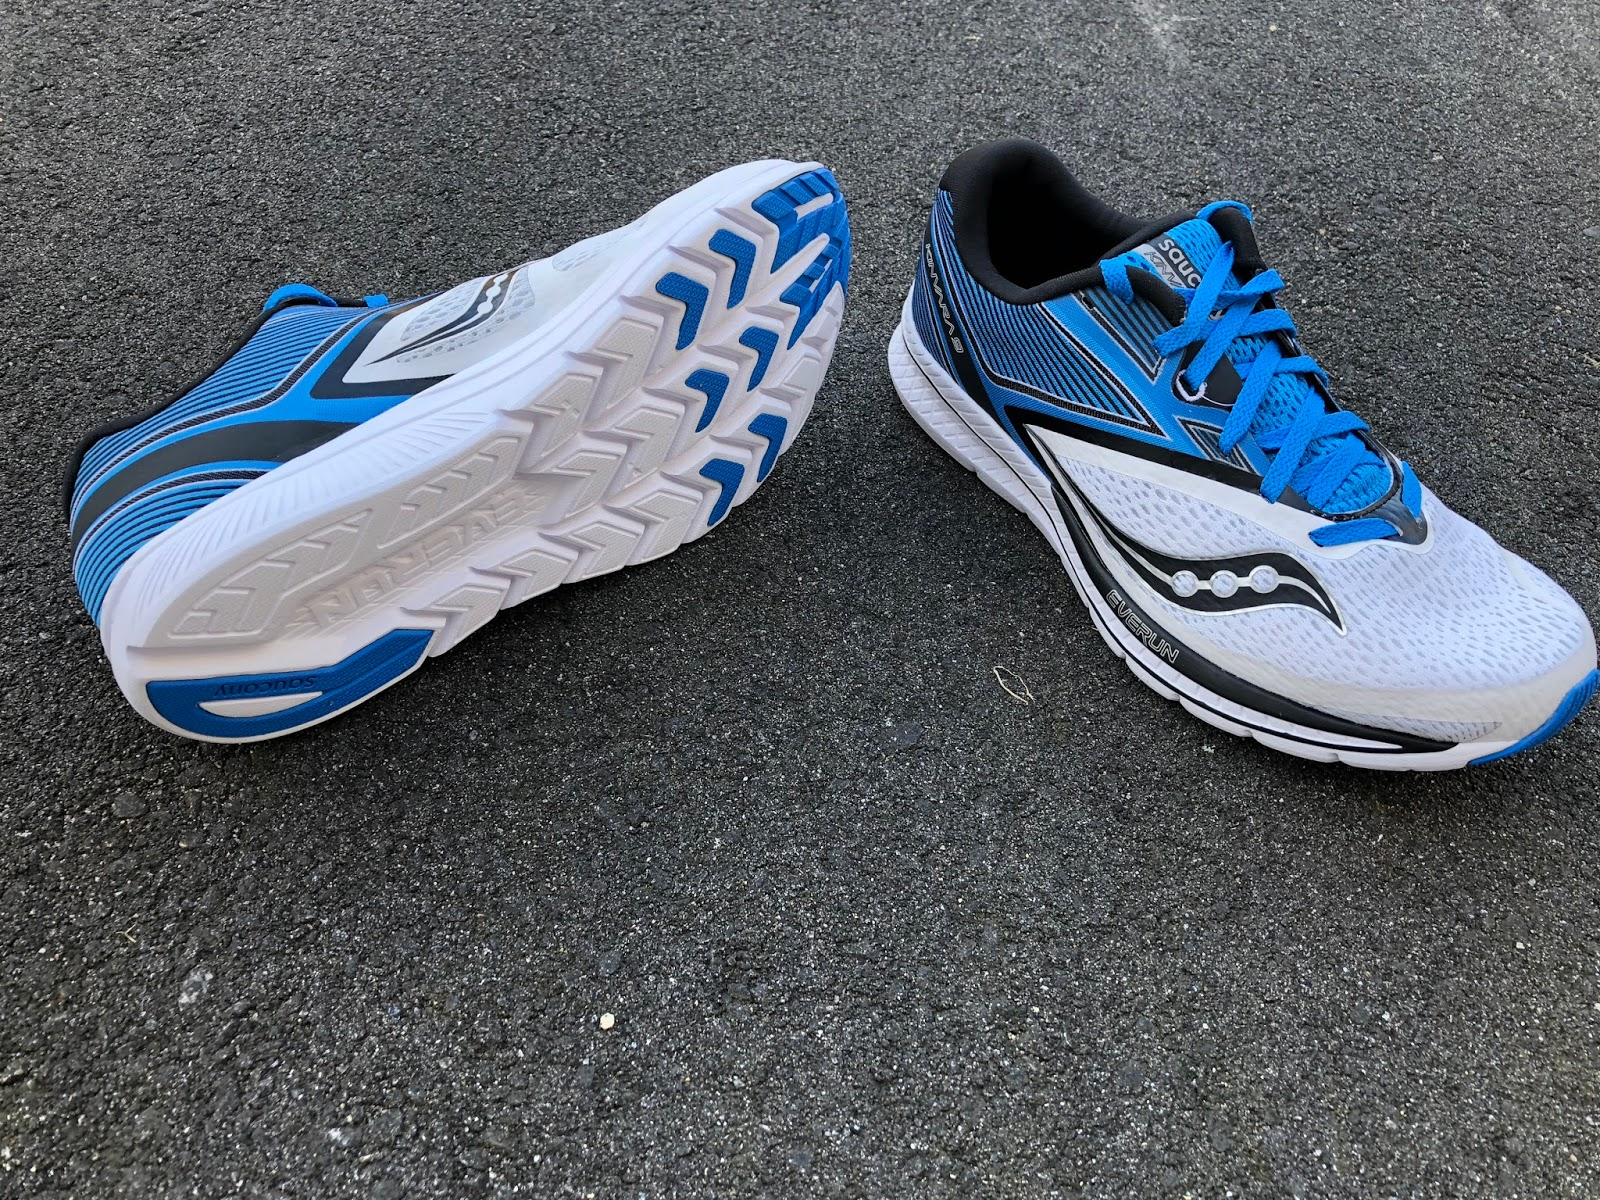 546b1d19e55 Road Trail Run  Saucony Kinvara 9 Review  At Long Last The K Shoe ...